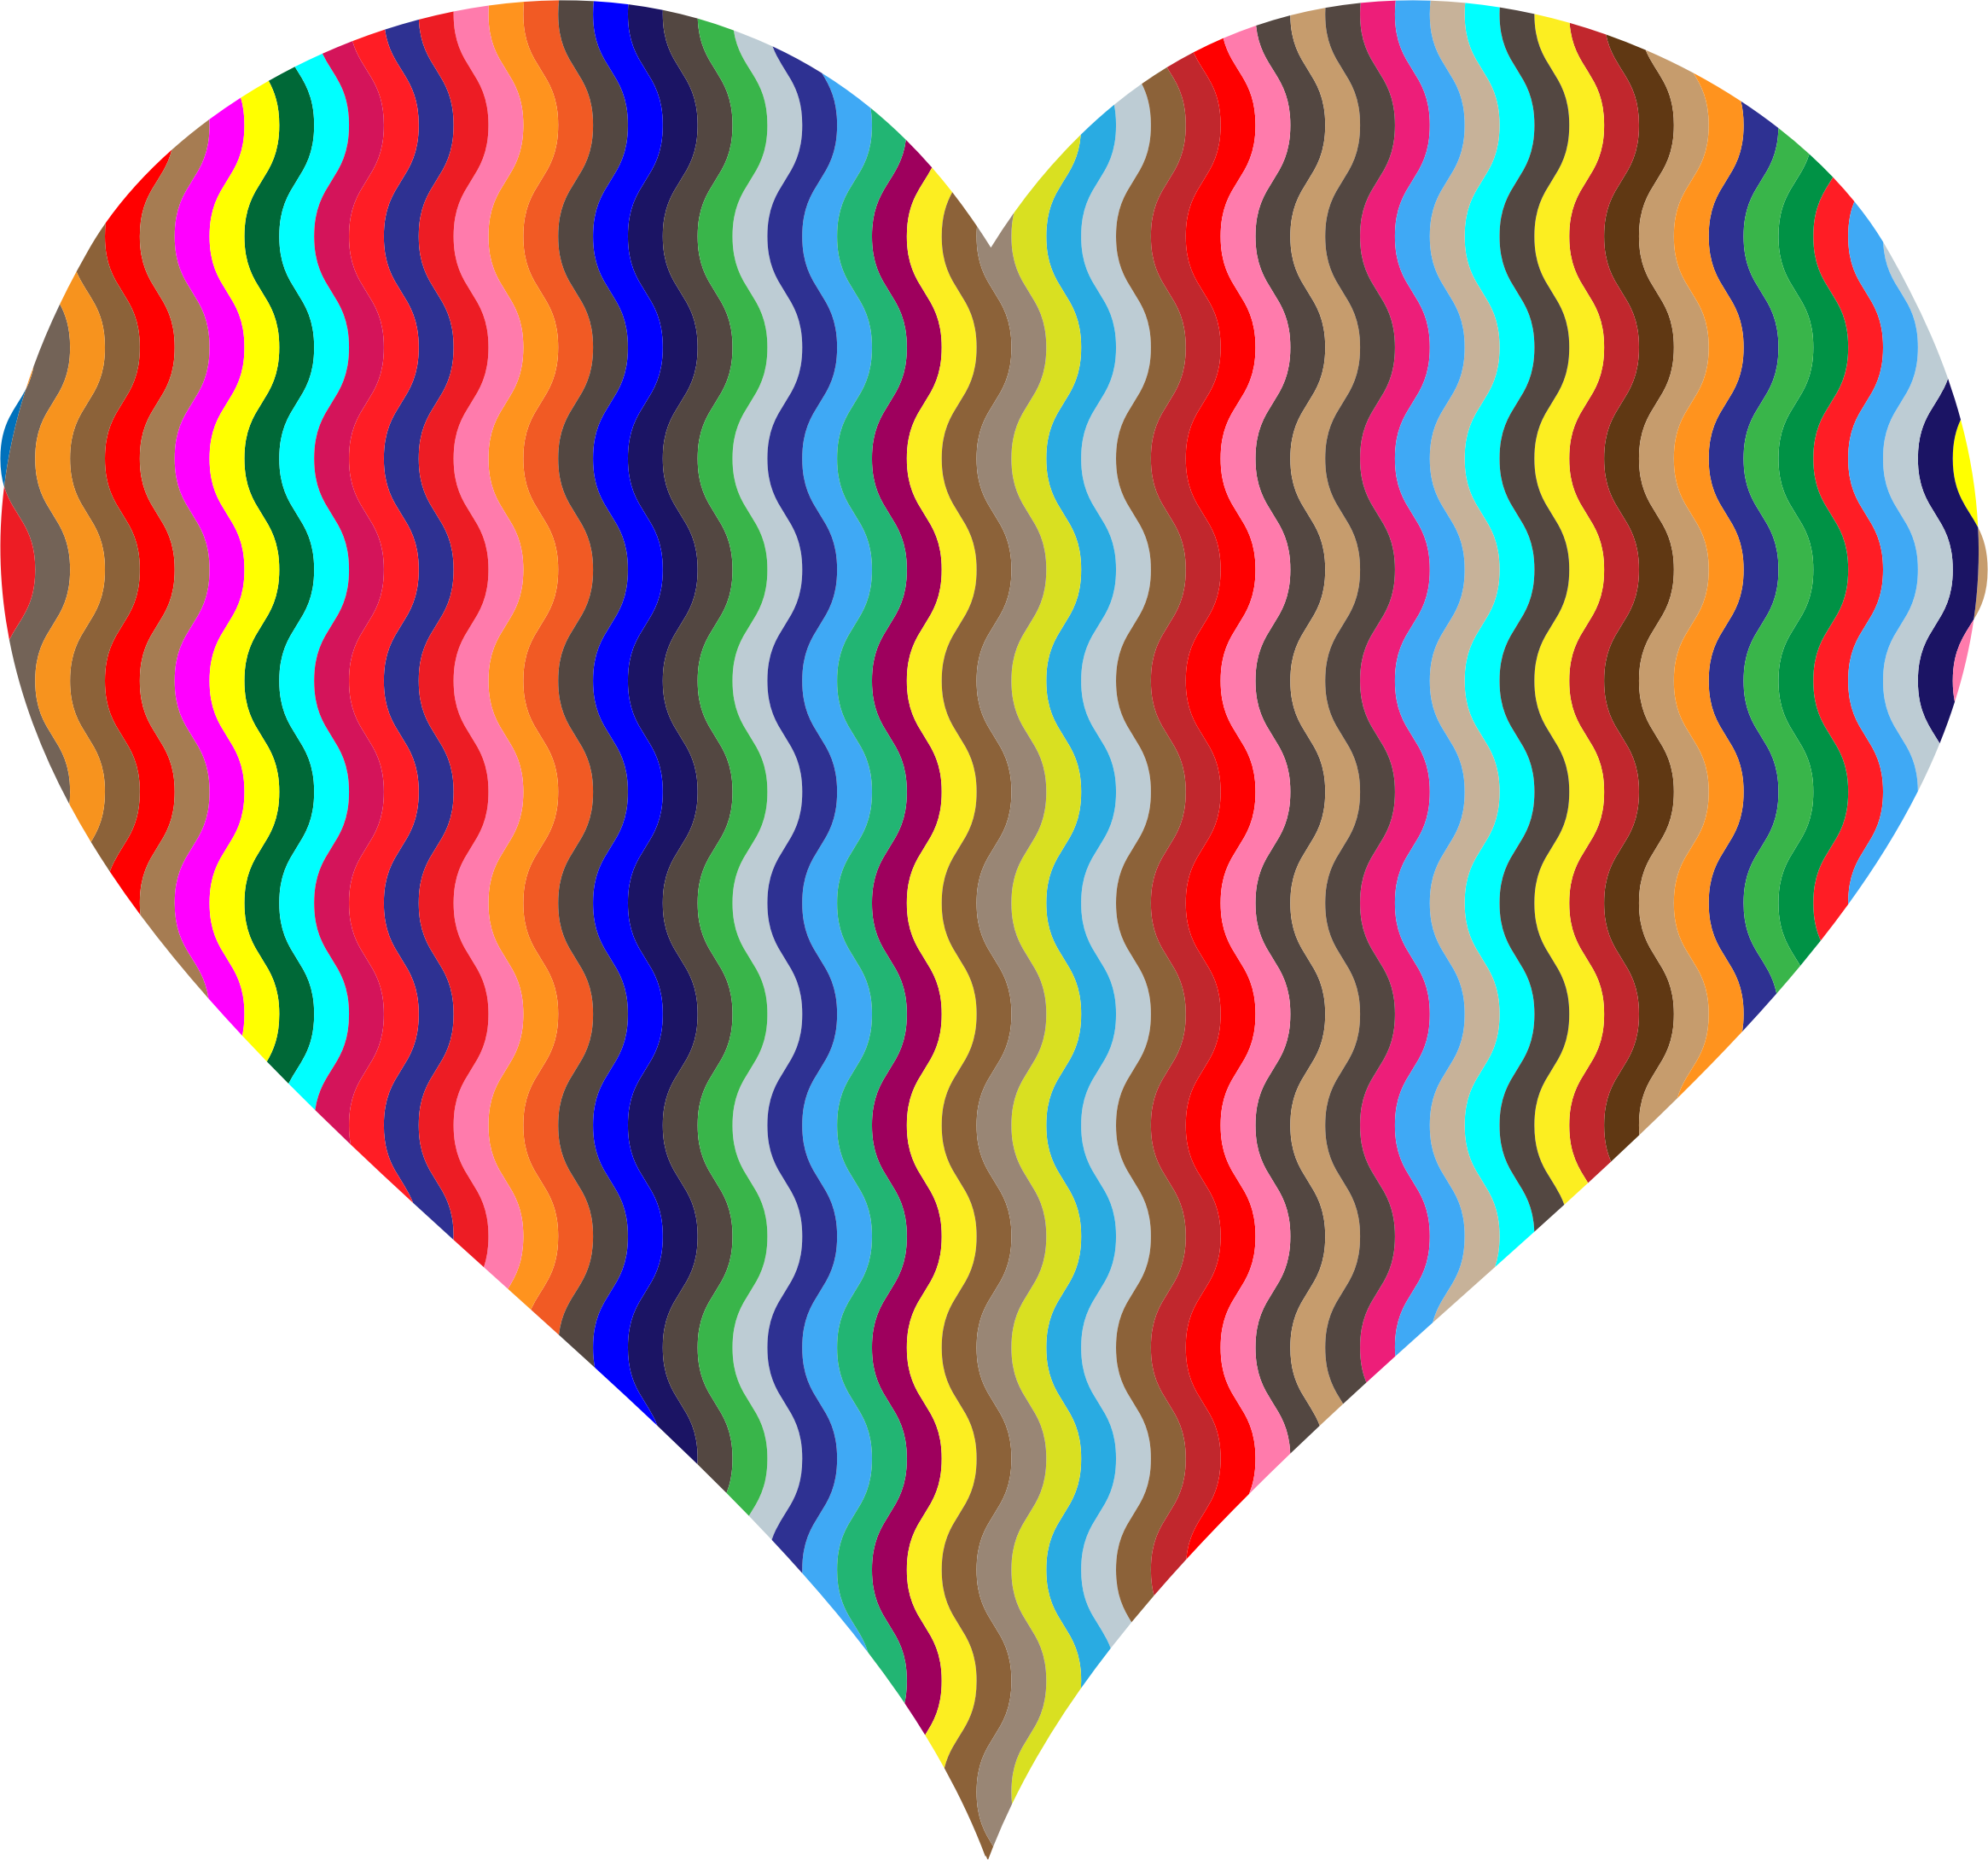 Colorful Wavy Heart 2 by GDJ